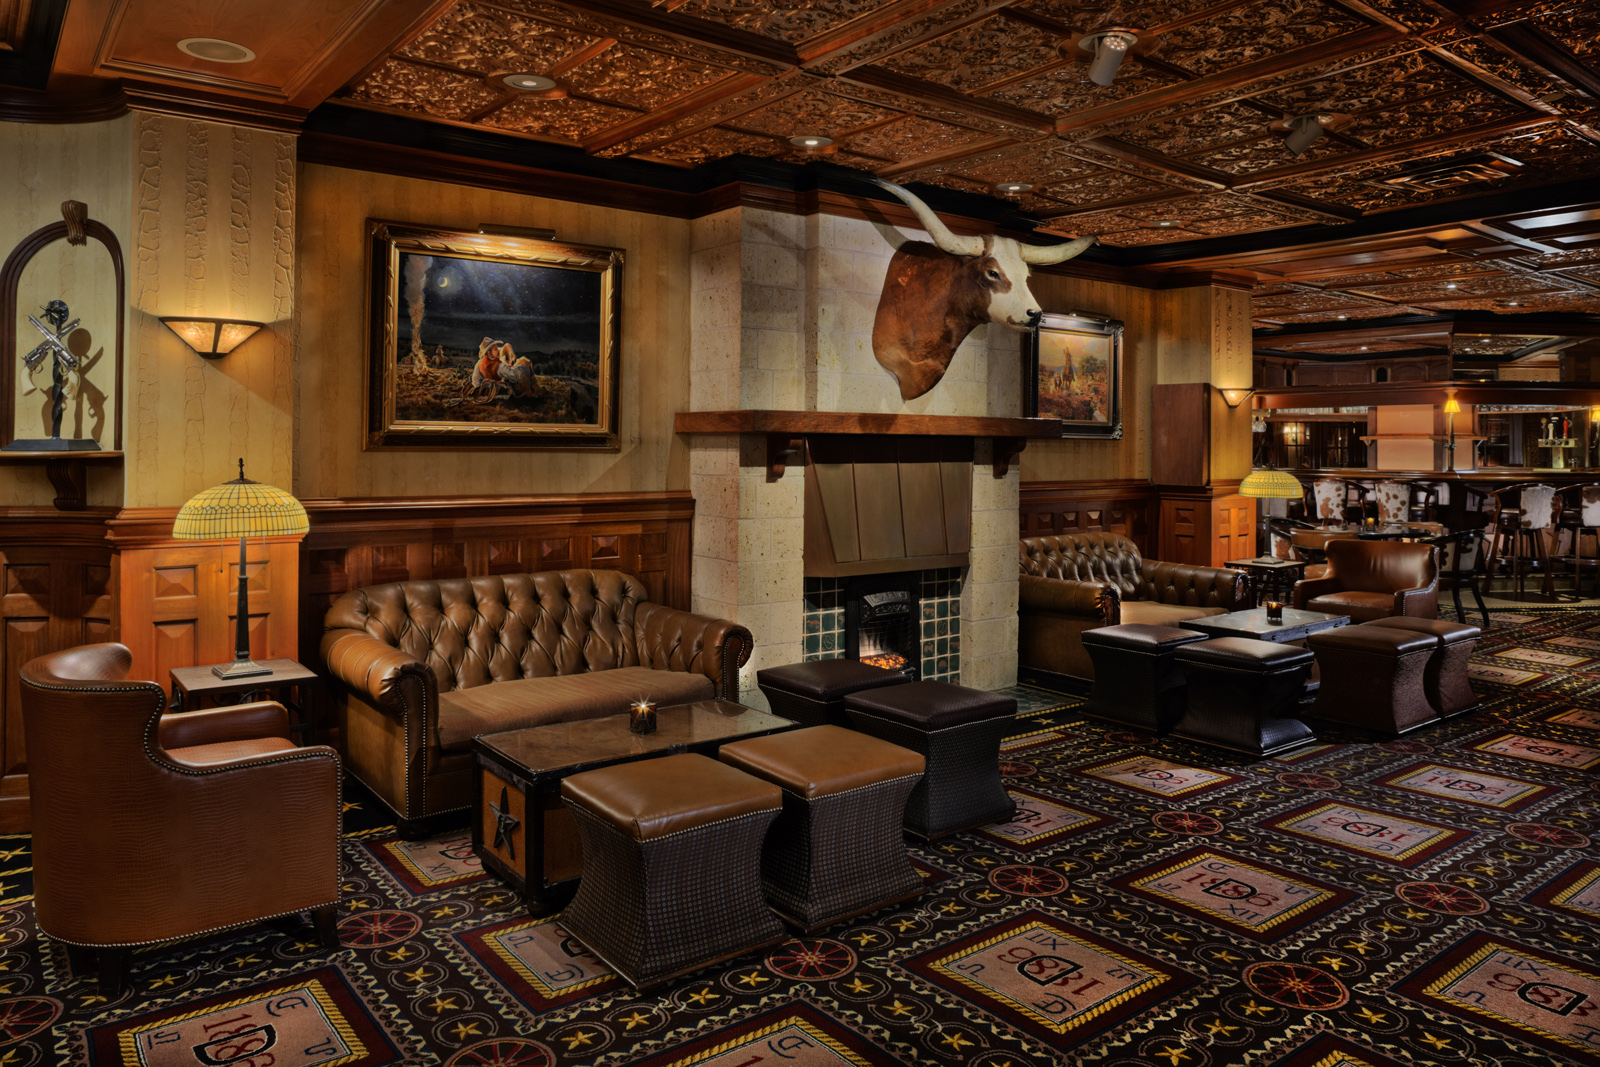 Texas: The Driskill Bar